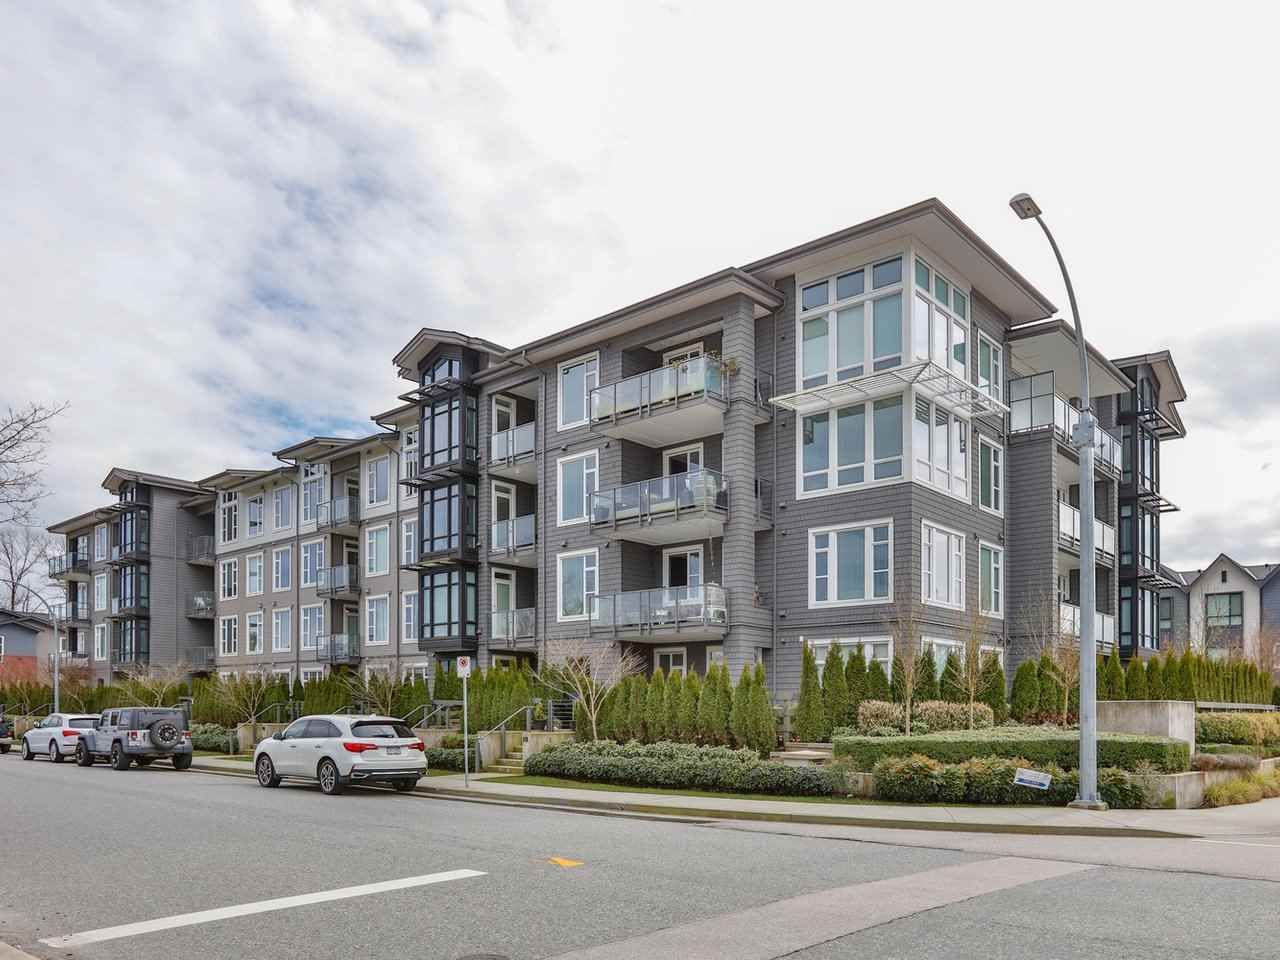 """Main Photo: 319 2393 RANGER Lane in Port Coquitlam: Riverwood Condo for sale in """"Freemont Emerald"""" : MLS®# R2554624"""